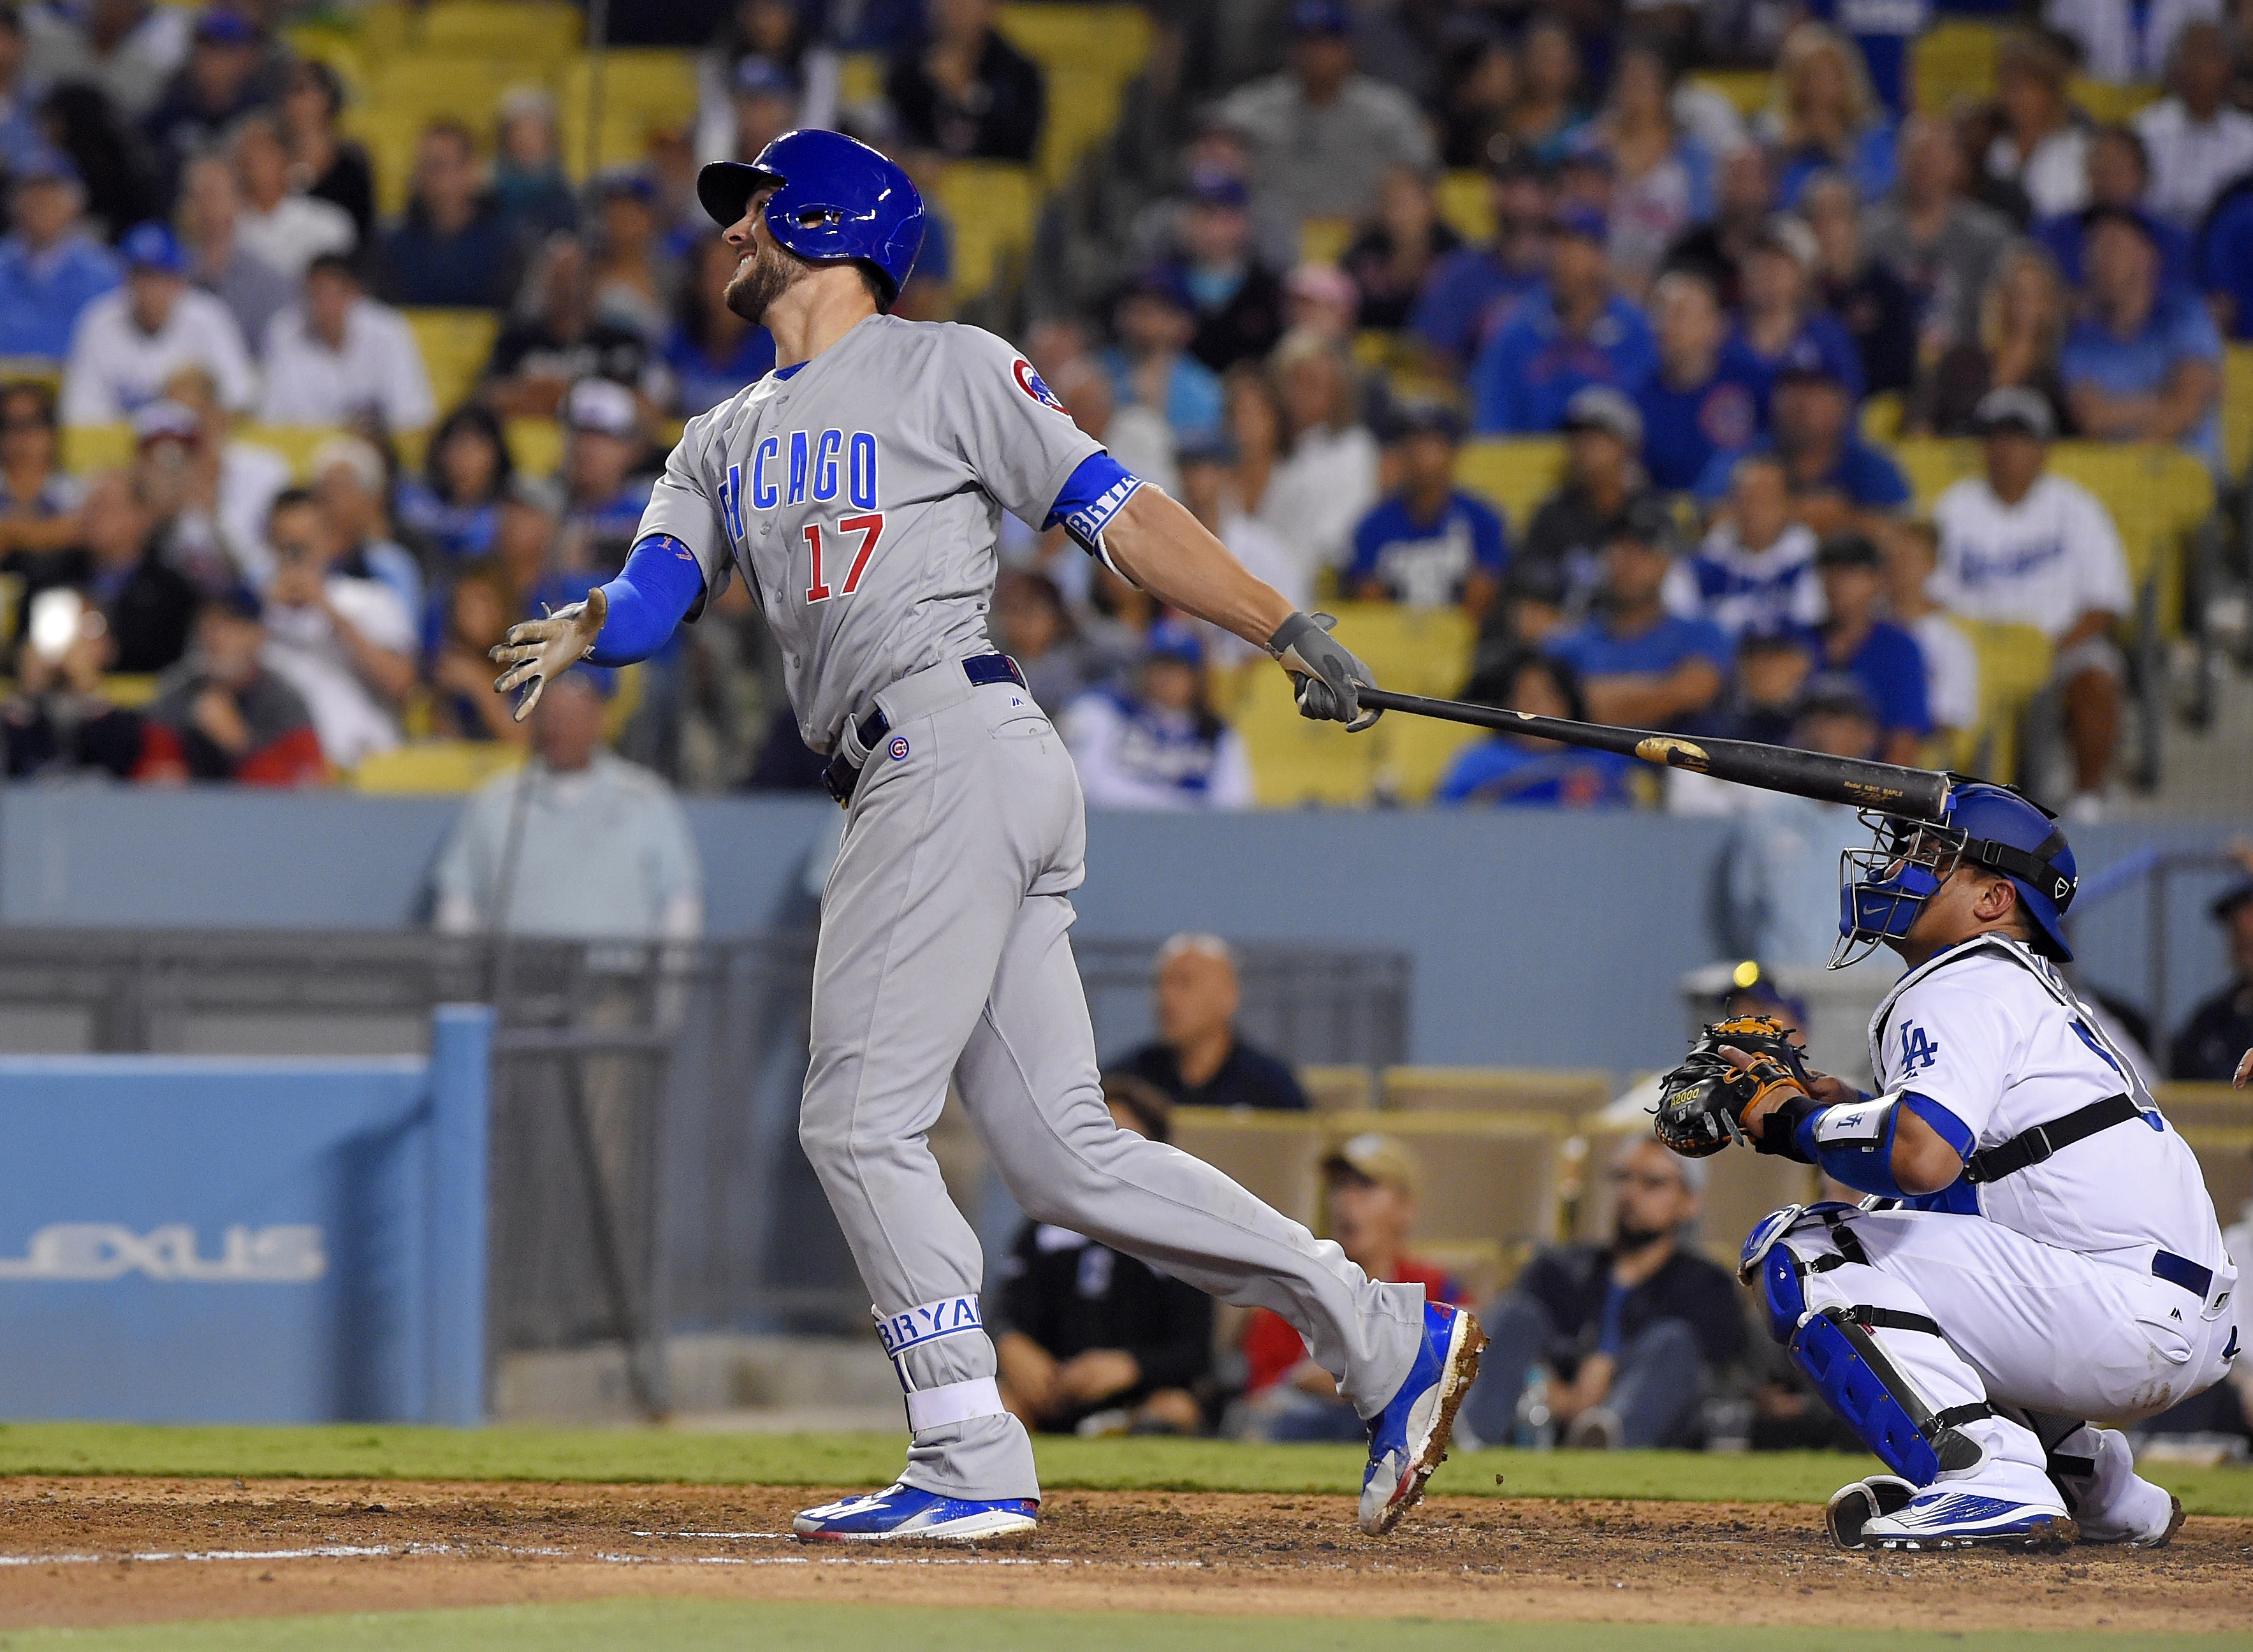 Chicago Cubs' Kris Bryant, left, follows through on a two-run home run as Los Angeles Dodgers catcher Carlos Ruiz watches during the 10th inning of a baseball game, Friday, Aug. 26, 2016, in Los Angeles. (AP Photo/Mark J. Terrill)